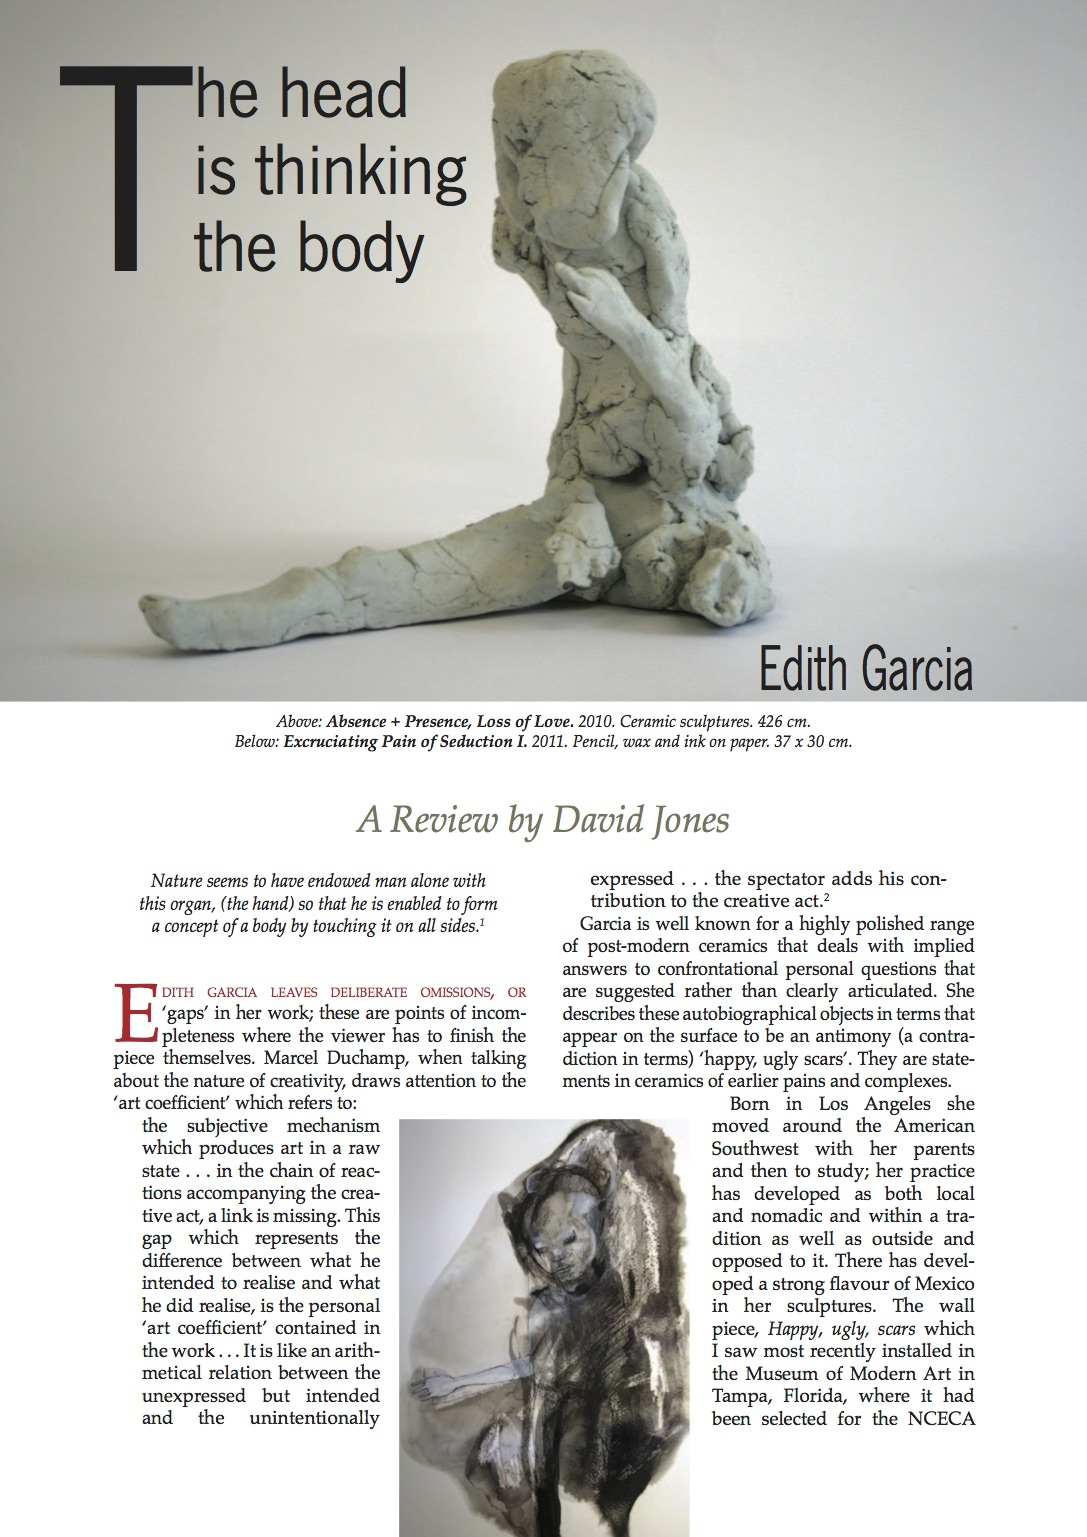 The head is thinking the body - Ceramics: Art and Perception Magazine David JonesNature seems to have endowed man alone with this organ, (the hand) so that he is enabled to form a concept of a body by touching it on all sides. (1)Edith Garcia leaves deliberate omissions, or 'gaps' in her work; these are points of incompleteness where the viewer has to finish the piece themselves. Marcel Duchamp, when talking about the nature of creativity, draws attention to the 'art coefficient' which refers to: the subjective mechanism which produces art in a raw state . . . in the chain of reactions accompanying the creative act, a link is missing. This gap which represents the difference between what he intended to realise and what he did realise, is the personal 'art coefficient' contained in the work...It is like an arithmetical relation between the unexpressed but intended and the unintentionally expressed . . . the spectator adds his contribution to the creative act. (2)Garcia is well known for a highly polished range of post-modern ceramics that deals with implied answers to confrontational personal questions that are suggested rather than clearly articulated. She describes these autobiographical objects in terms that appear on the surface to be an antimony (a contradiction in terms) 'happy, ugly scars'. They are statements in ceramics of earlier pains and complexes.Born in Los Angeles she moved around the American Southwest with her parents and then to study; her practice has developed as both local and nomadic and within a tradition as well as outside and opposed to it. There has developed a strong avour of Mexico in her sculptures. The wall piece, Happy, ugly, scars which I saw most recently installed in the Museum of Modern Art in Tampa, Florida, where it had been selected for the NCECA (National Council on Education for the Ceramic Arts) exhibition was strangely reminiscent of the Day of the Dead manifestations in its half-entertaining/half-frightening elements that se